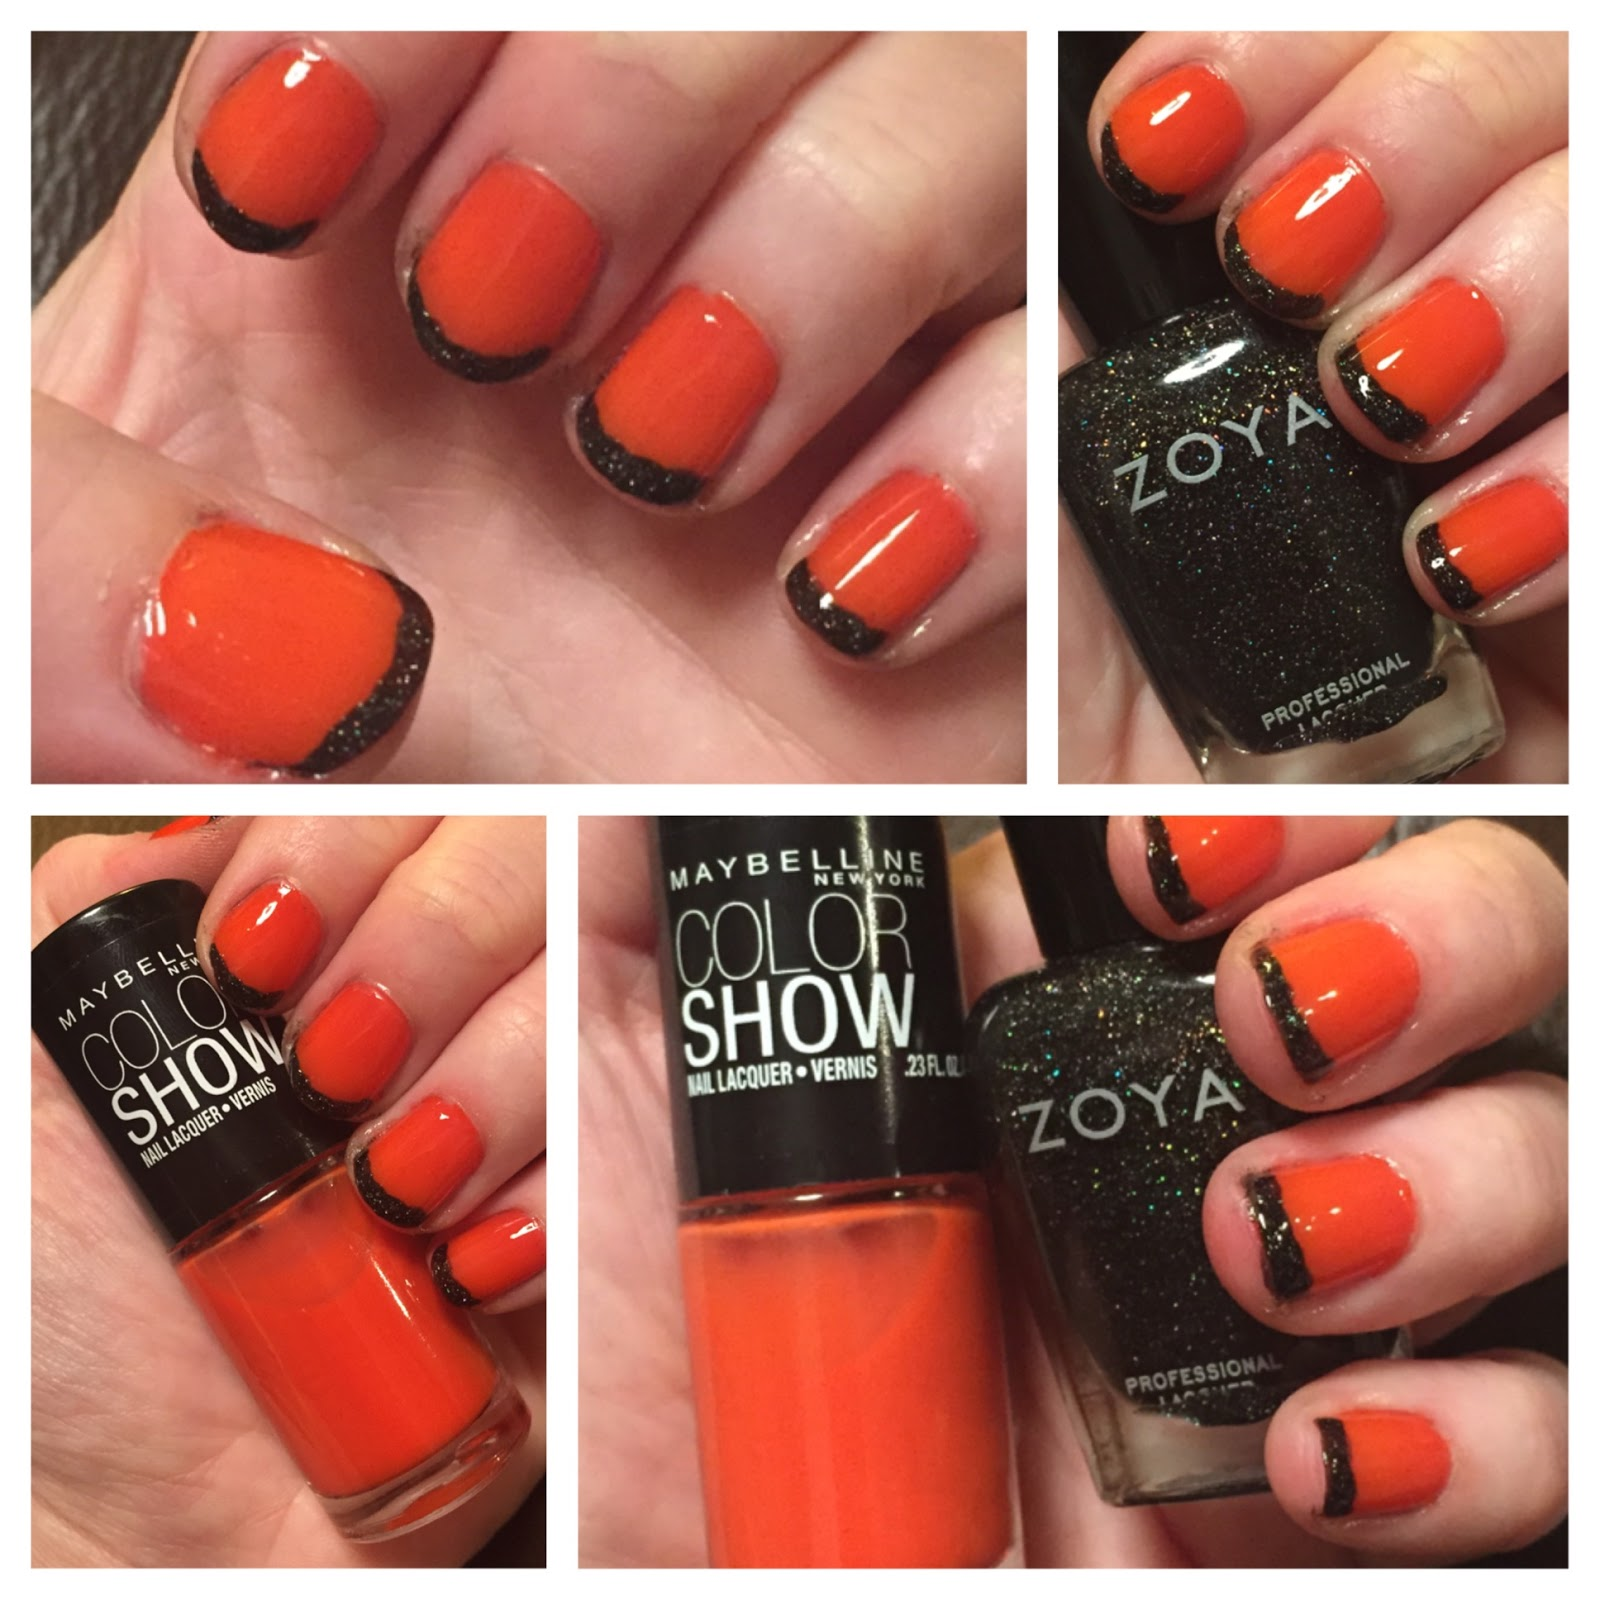 The Beauty of Life: Happy Halloween! Orange & Black French Manicure ...